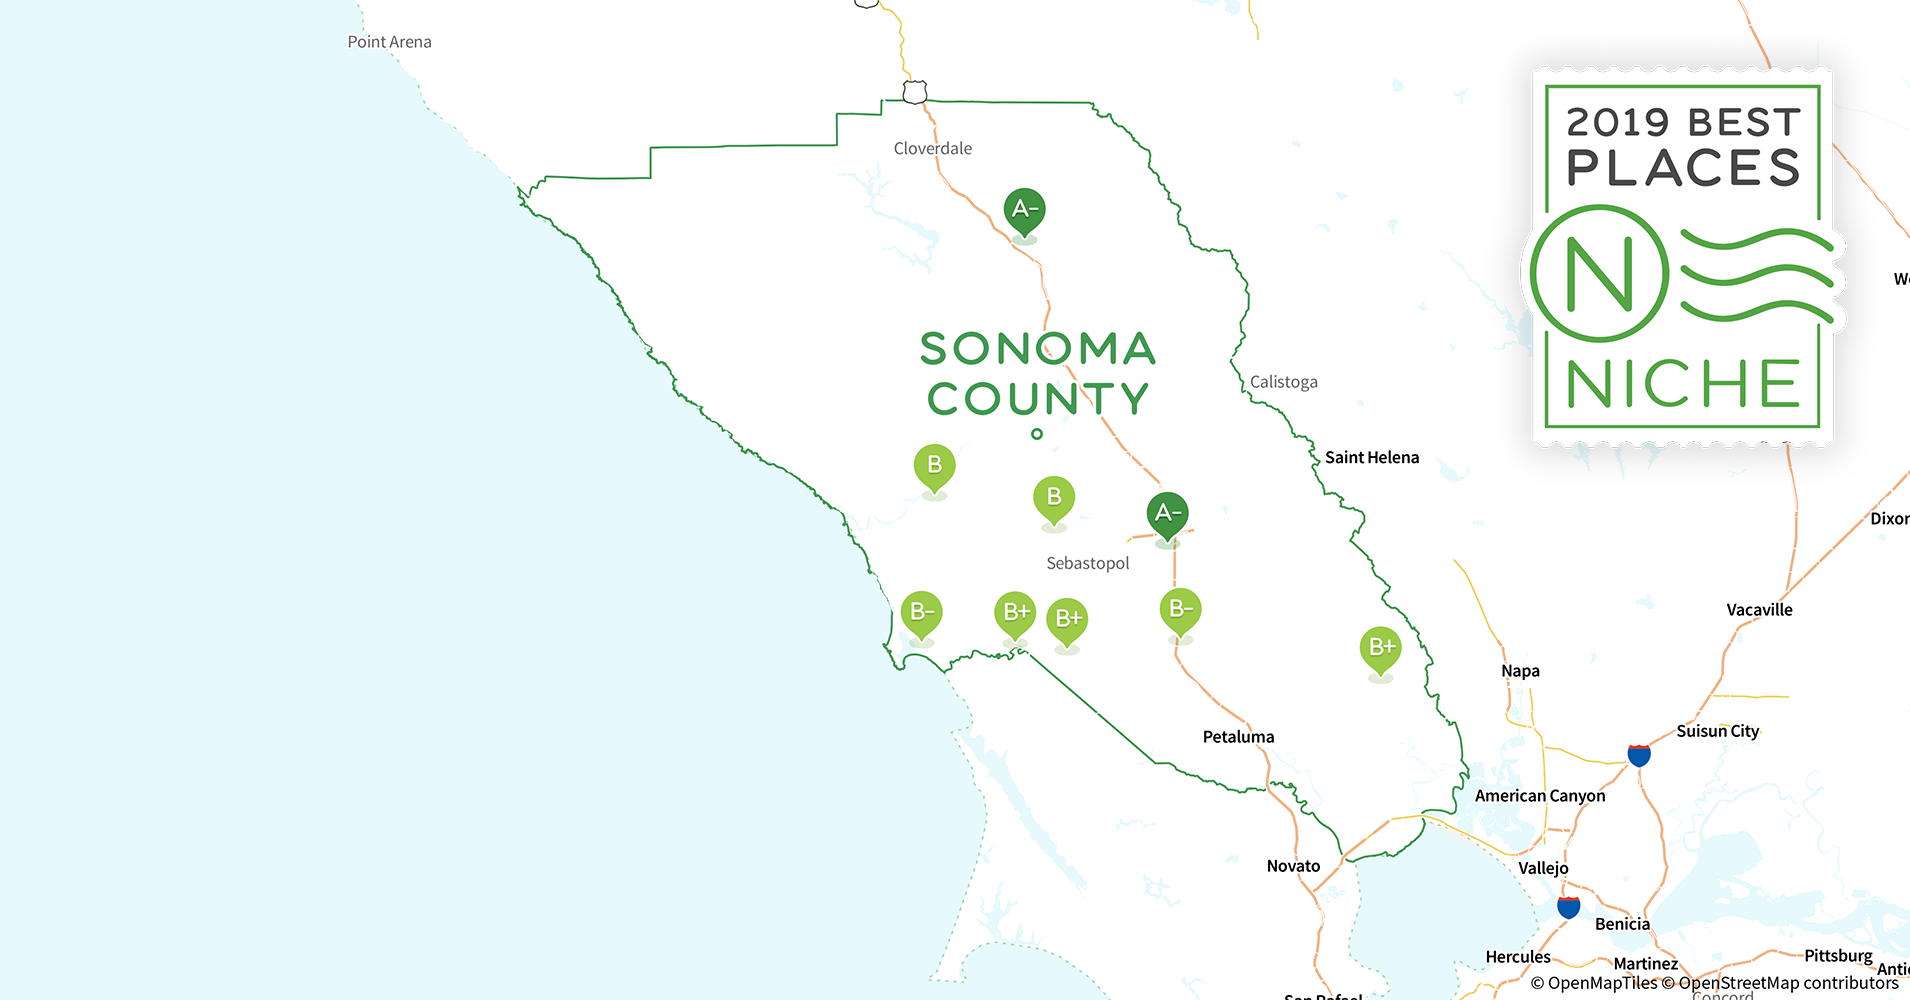 Sonoma Zip Code Map.2019 Best Places To Live In Sonoma County Ca Niche